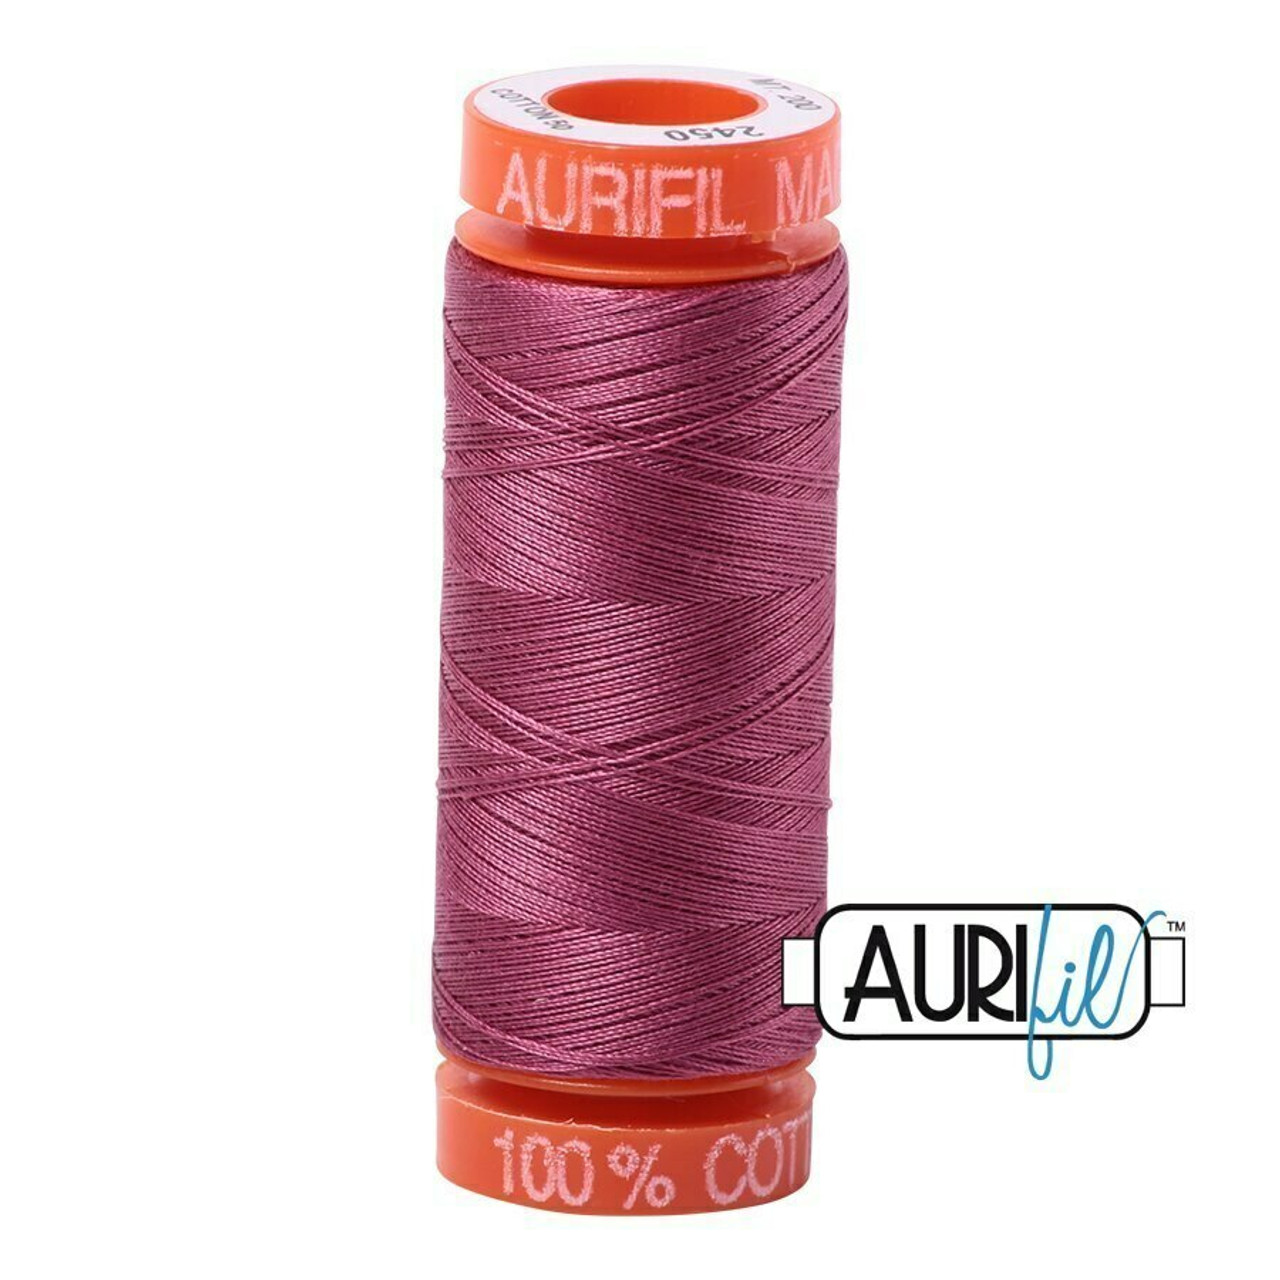 Aurifil 50wt Rose (2450) thread